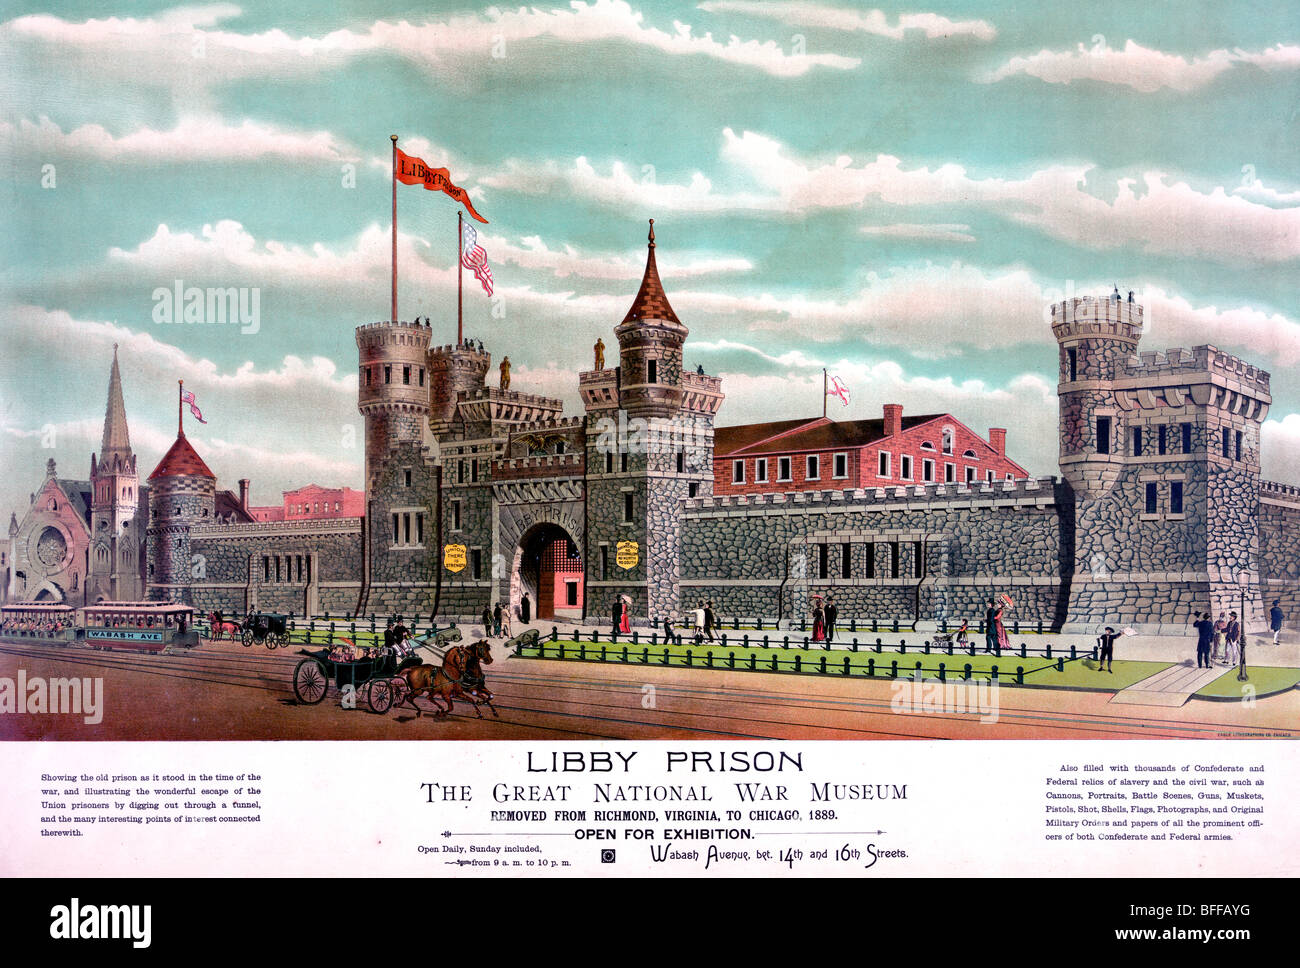 Libby Prison - The Great National War Museum, moved from Richmond to Chicago 1889 - Stock Image